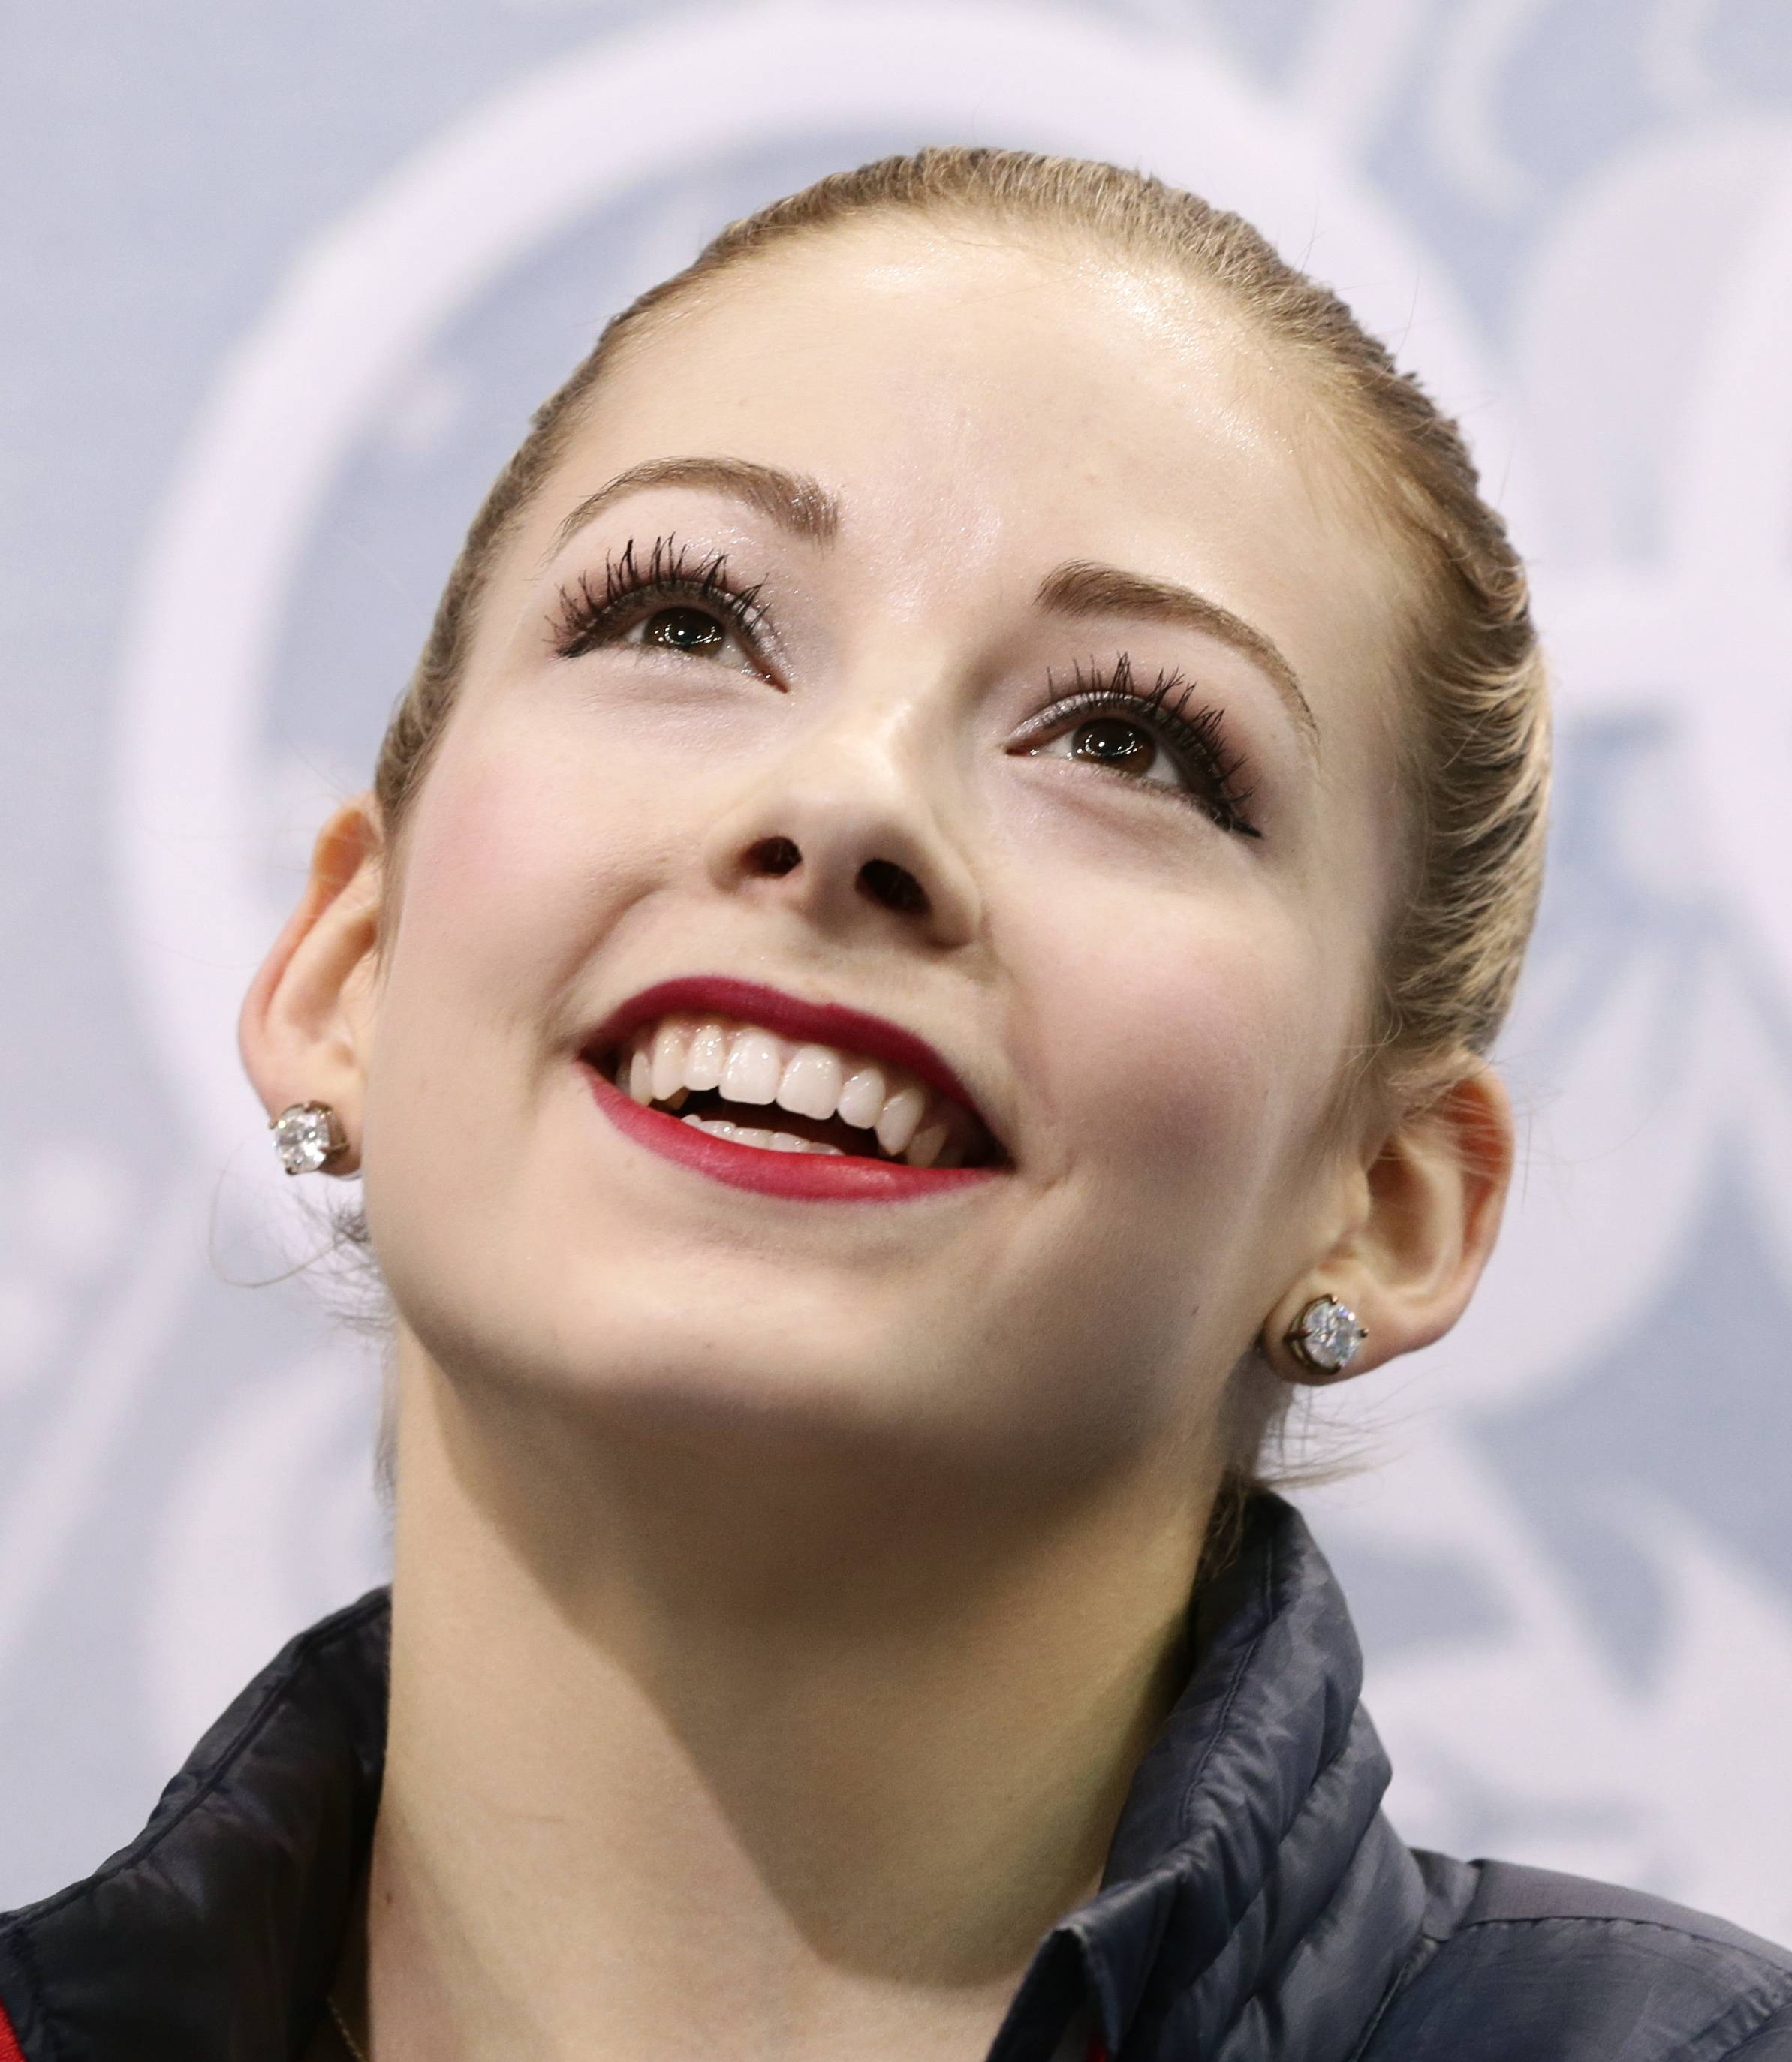 Gracie Gold of the United States waits in the results area after completing her routine in the women's short program figure skating competition at the Iceberg Skating Palace during the 2014 Winter Olympics, Wednesday, Feb. 19, 2014, in Sochi, Russia.